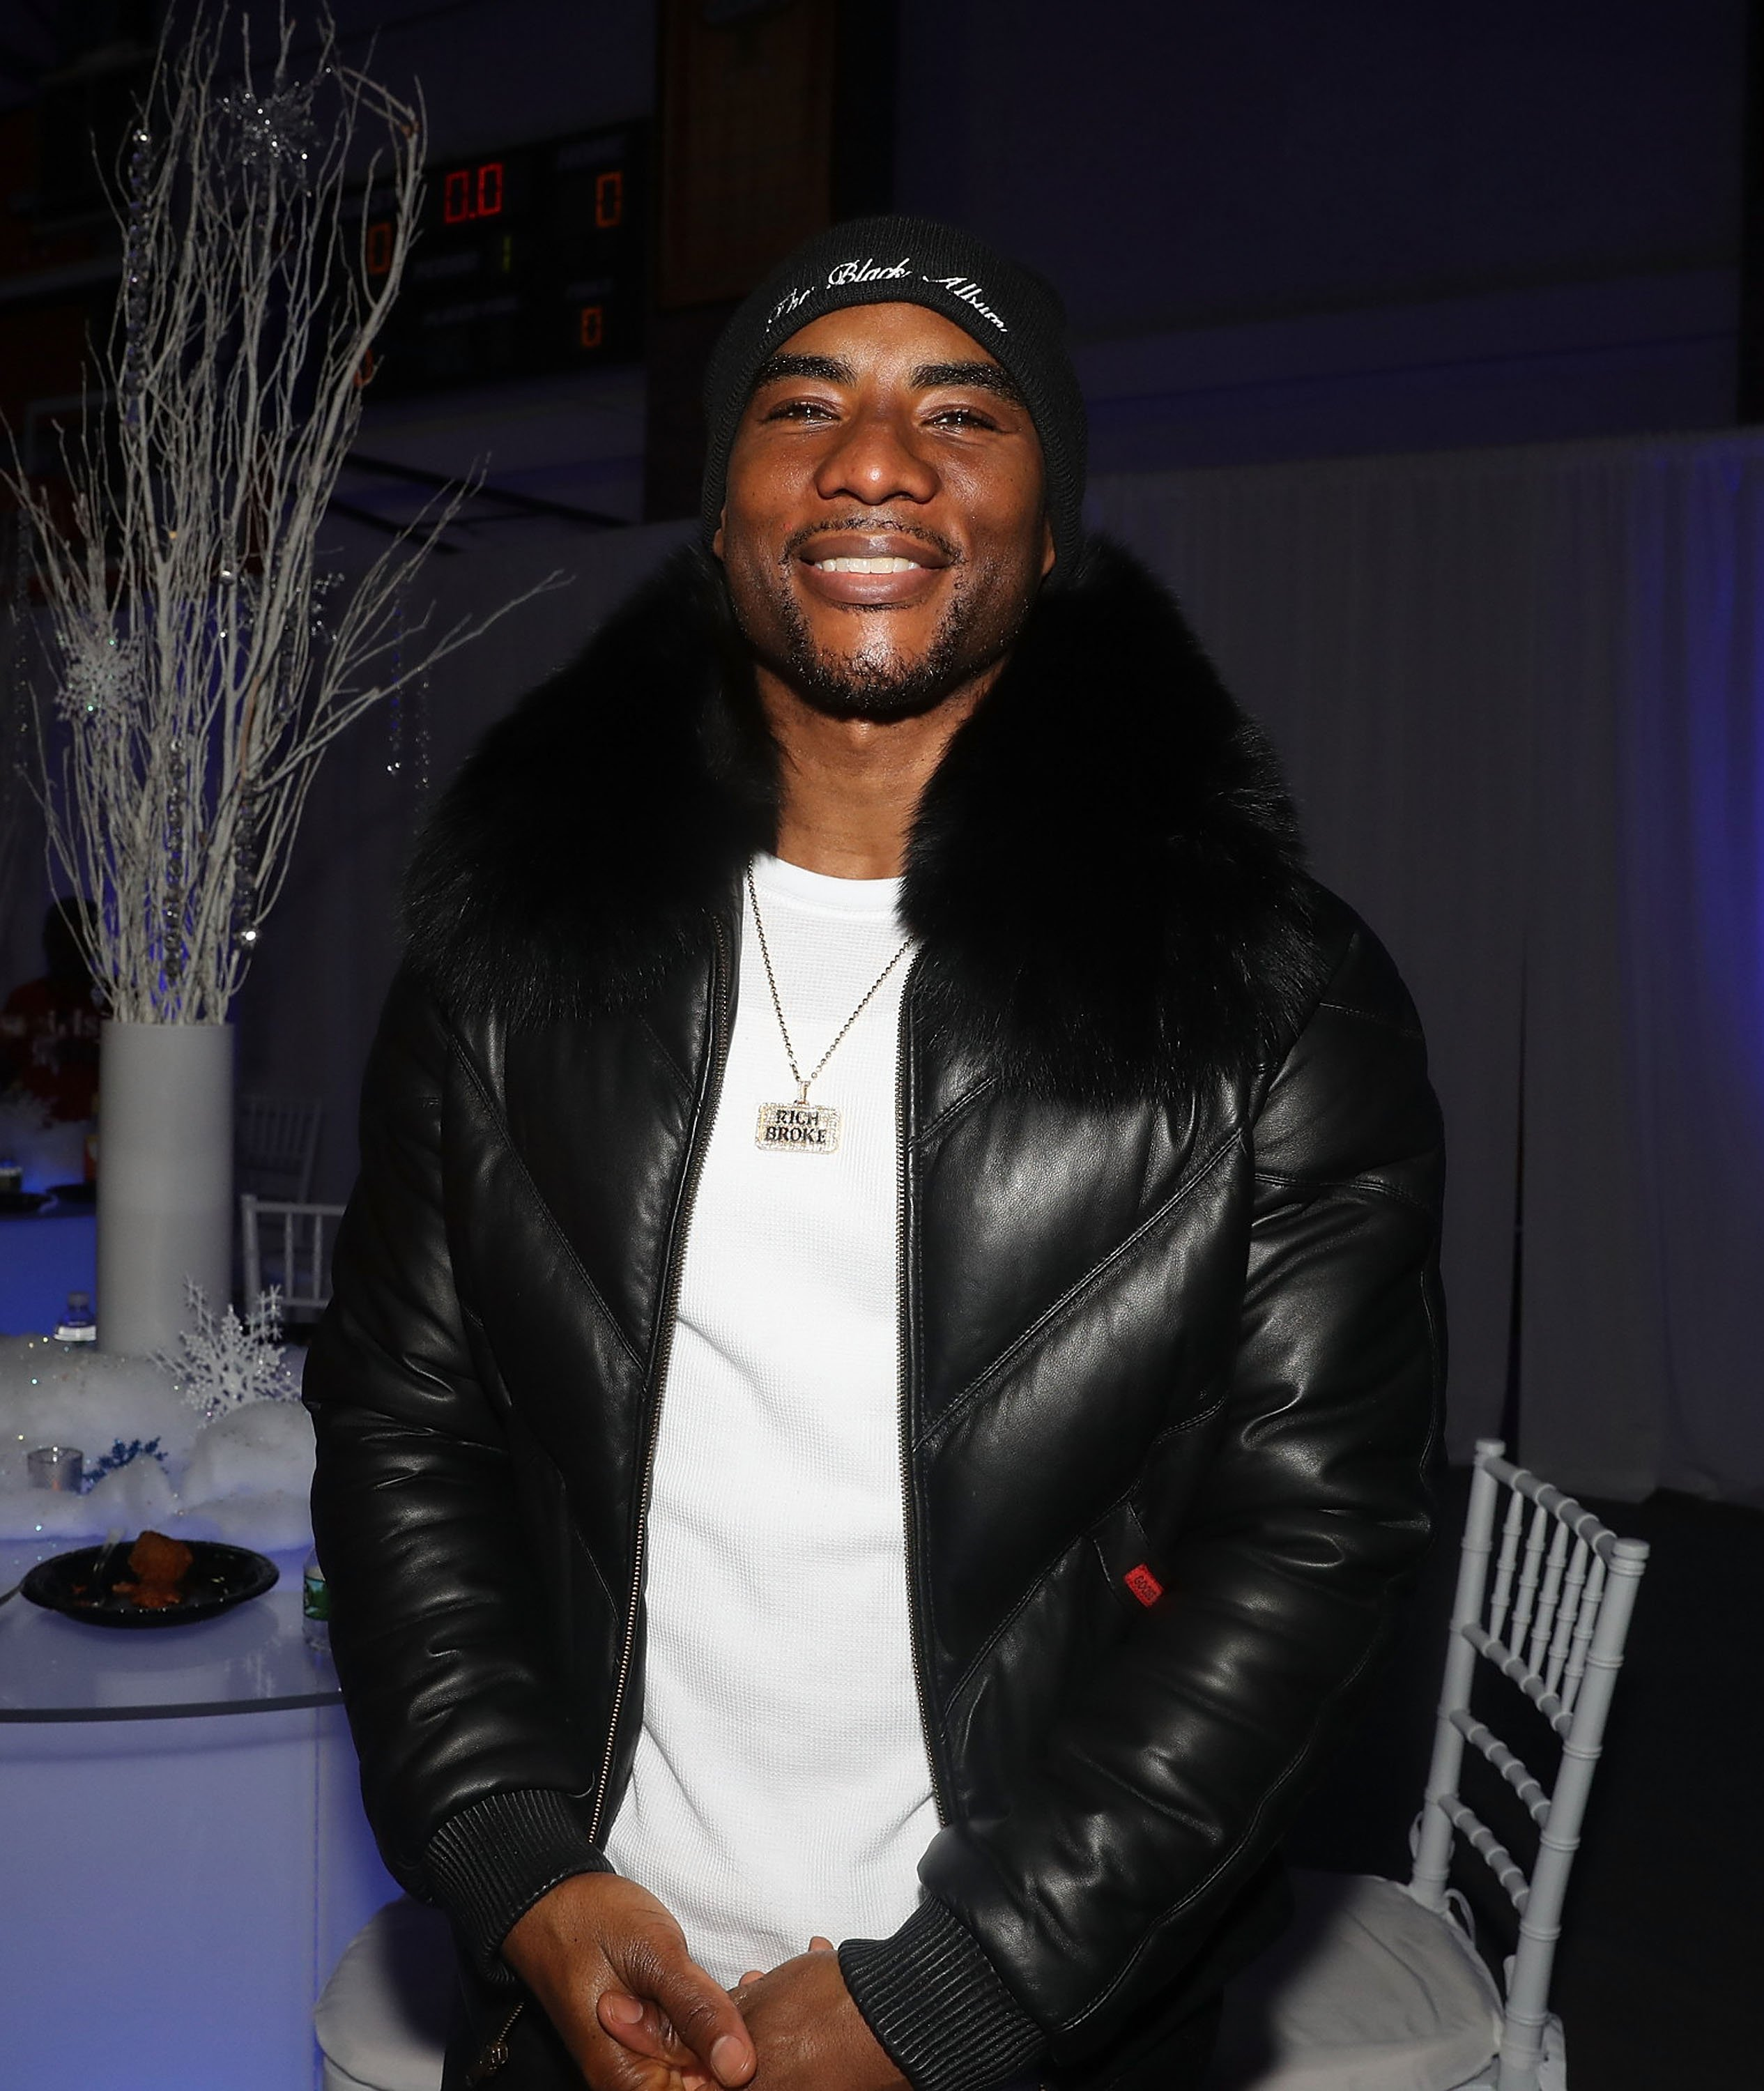 Charlamagne tha God attends 3rd Annual Winter Wonderland Holiday Charity Event Hosted By La La Anthony at Gauchos Gym on December 17, 2018 | Photo: GettyImages